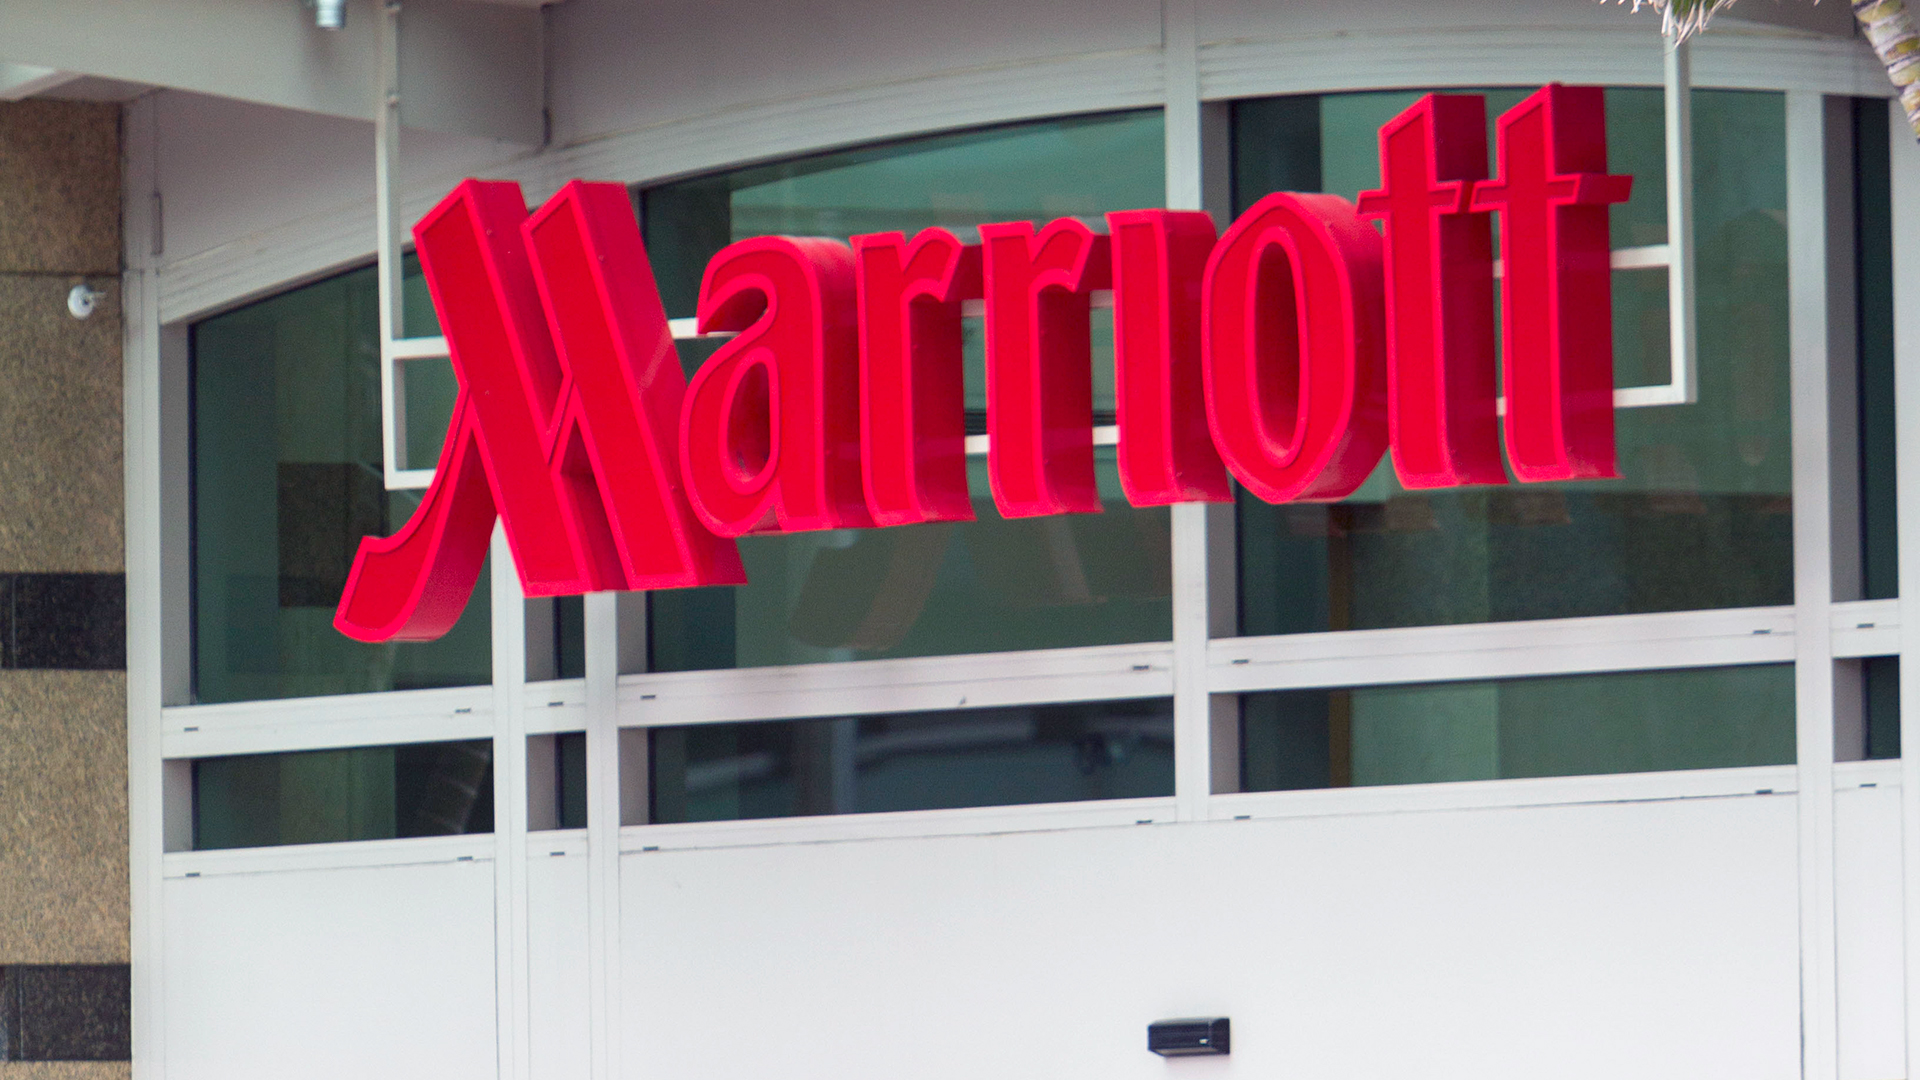 Marriott Hotel Sign-159532.jpg37524693